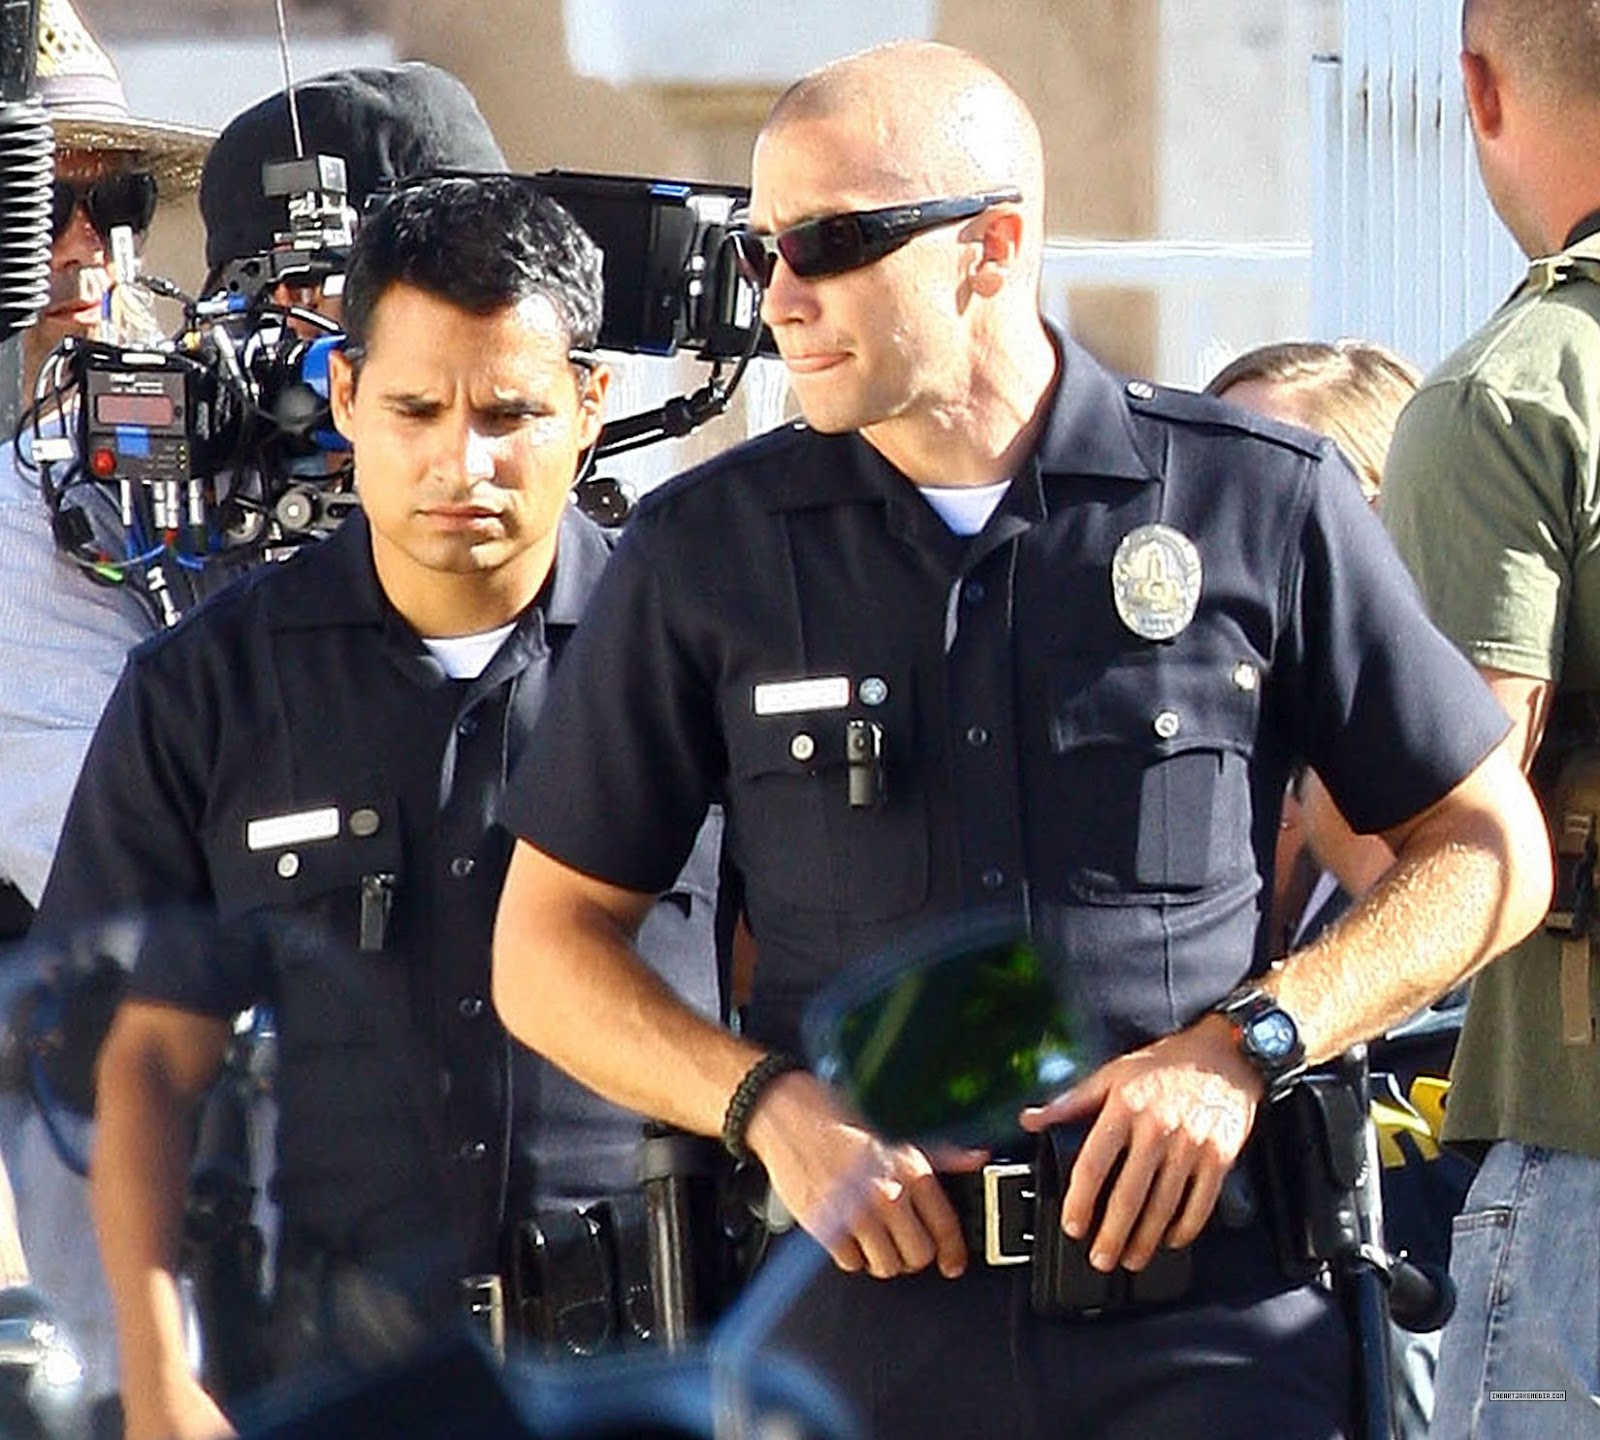 End Of Watch Quotes: End Of Watch Police Quotes. QuotesGram